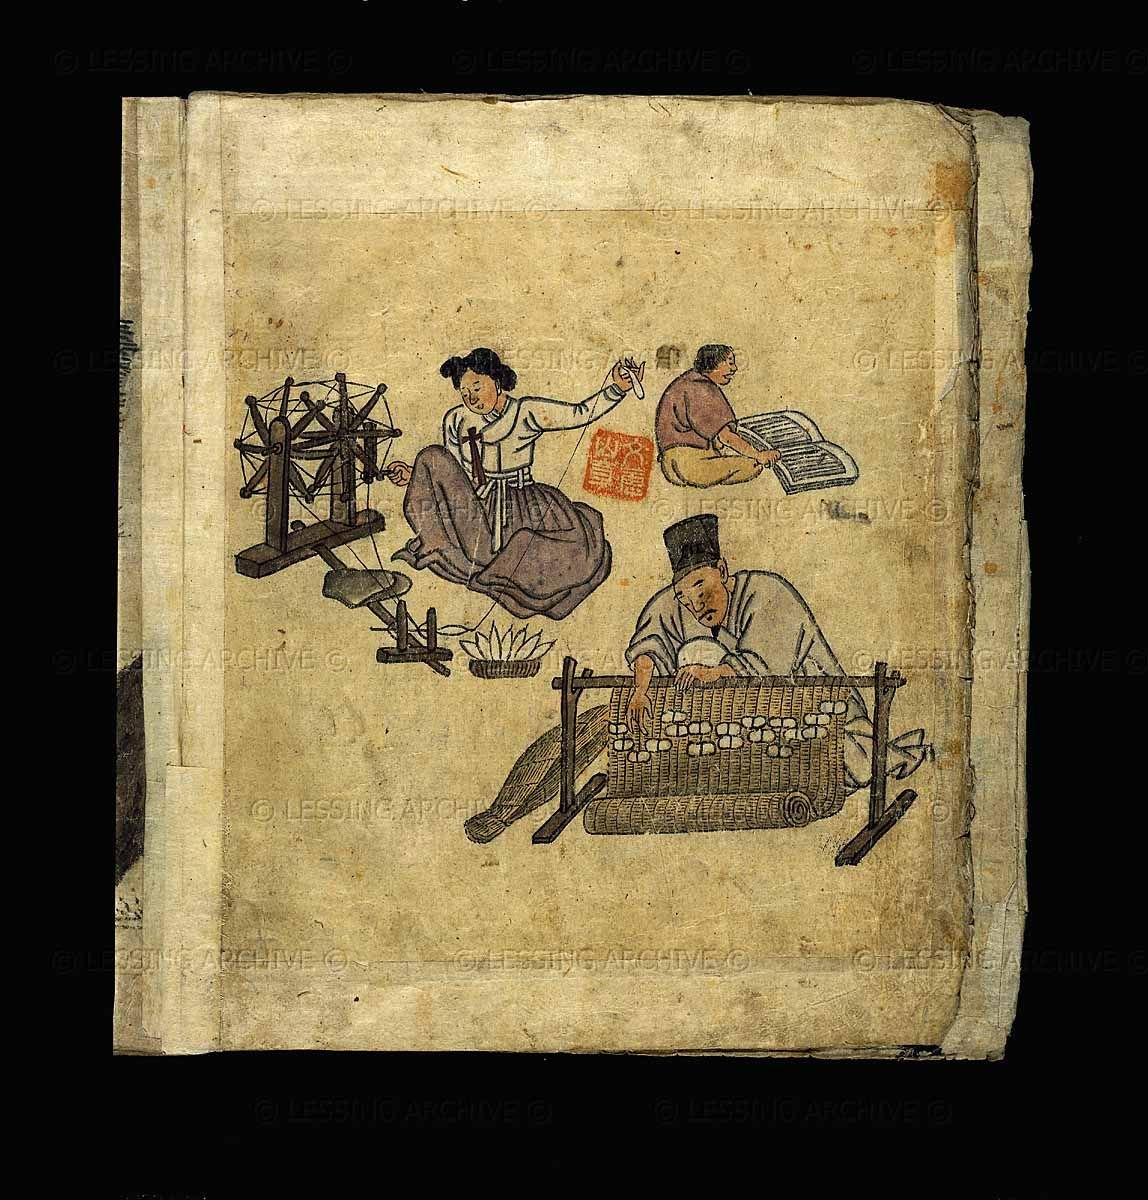 Korea Choson Dynasty 1392 1910 Painting 19th Kim Hong Do Spinning And Weaving From Album Of Scenes From Da Knitting Spinning Anything Fiber Telai